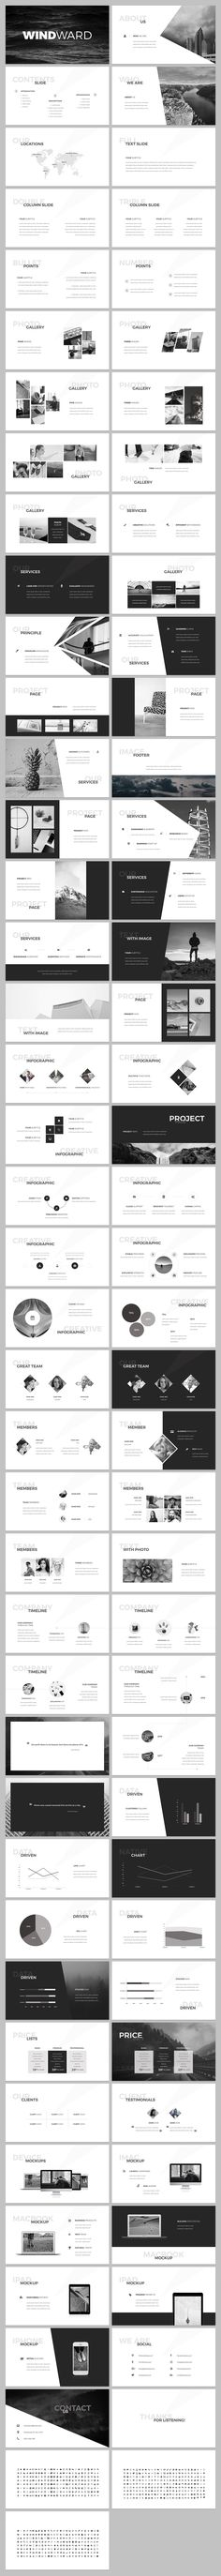 WindWard #PowerPoint #Template by SlideStation on @creativemarket